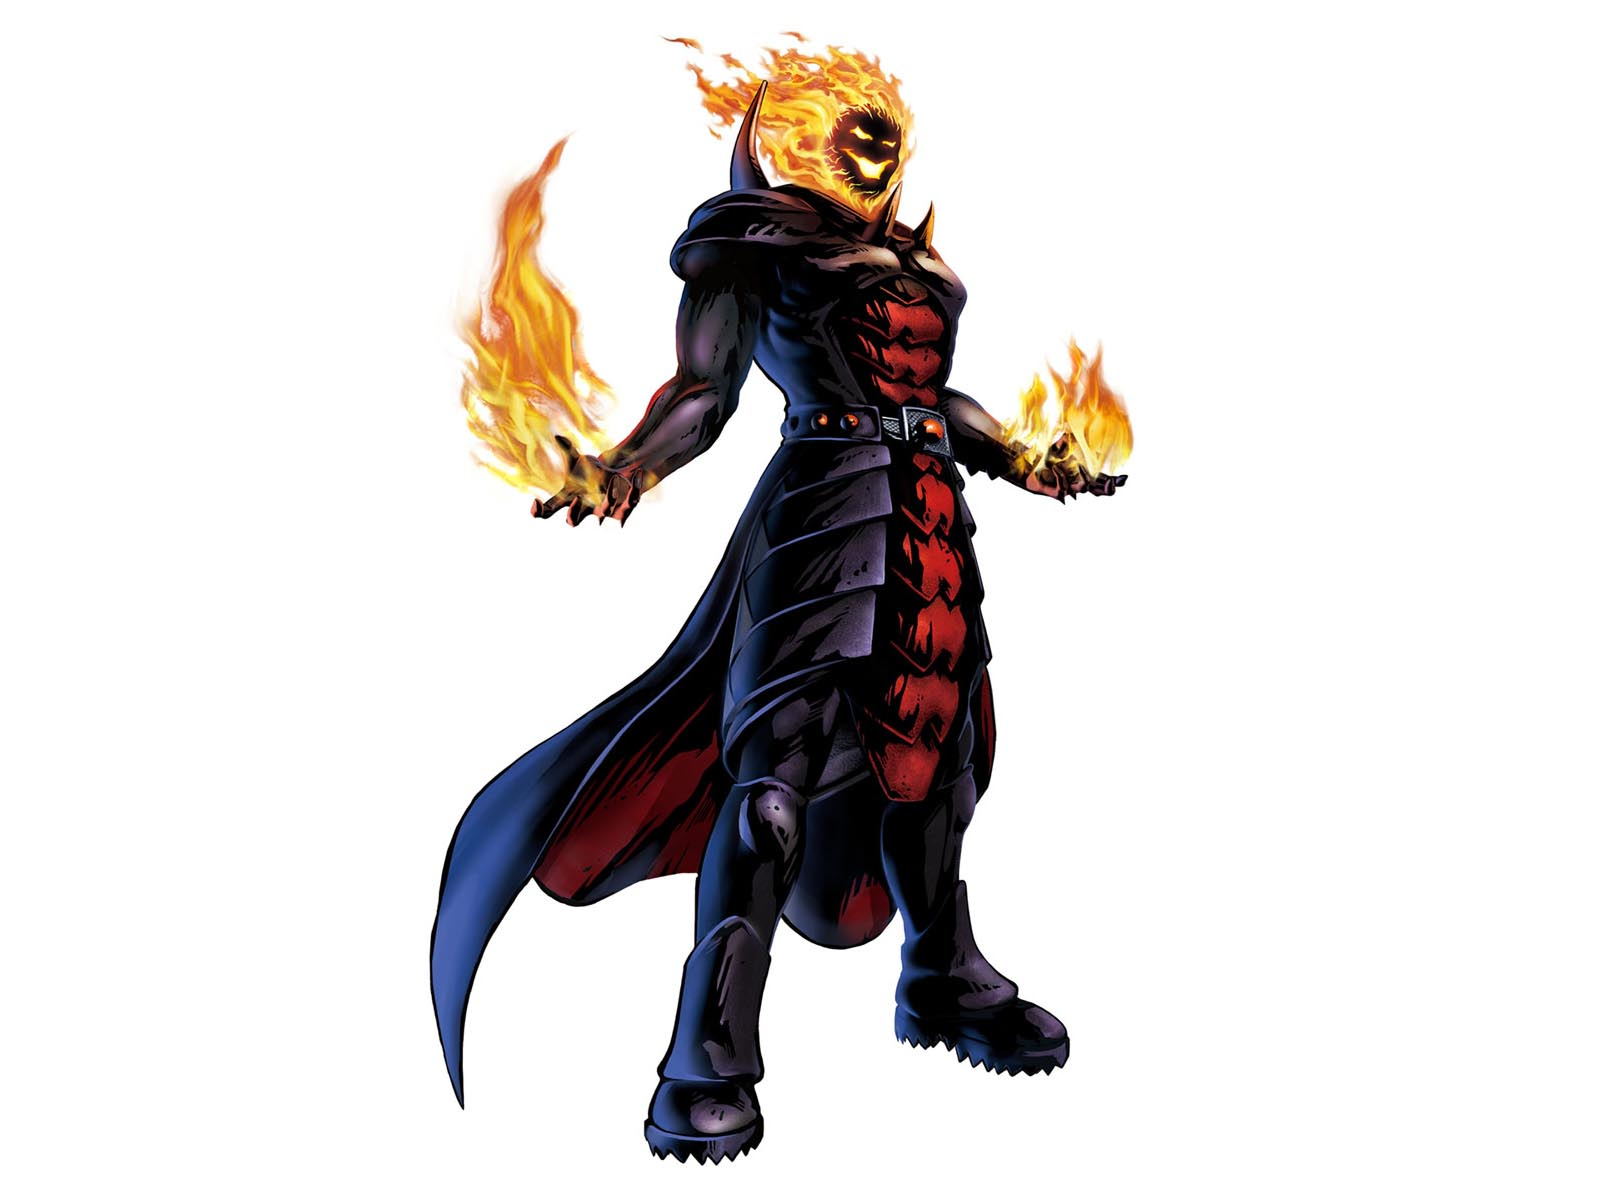 Avengers Animated Wallpaper 5 Dormammu Marvel Comics Hd Wallpapers Background